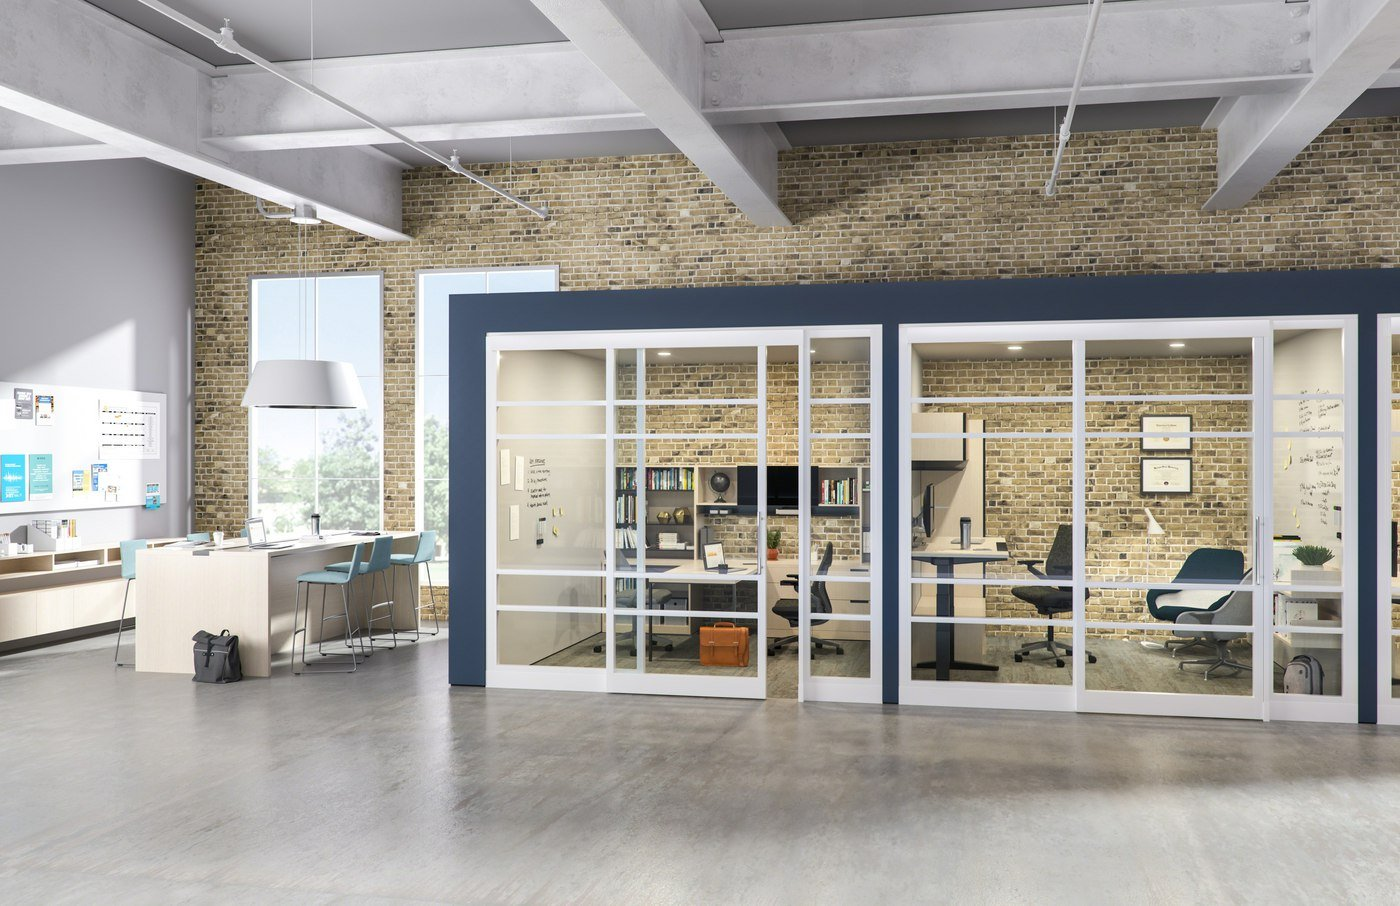 Should You Use Modular Walls in Your Workspace?